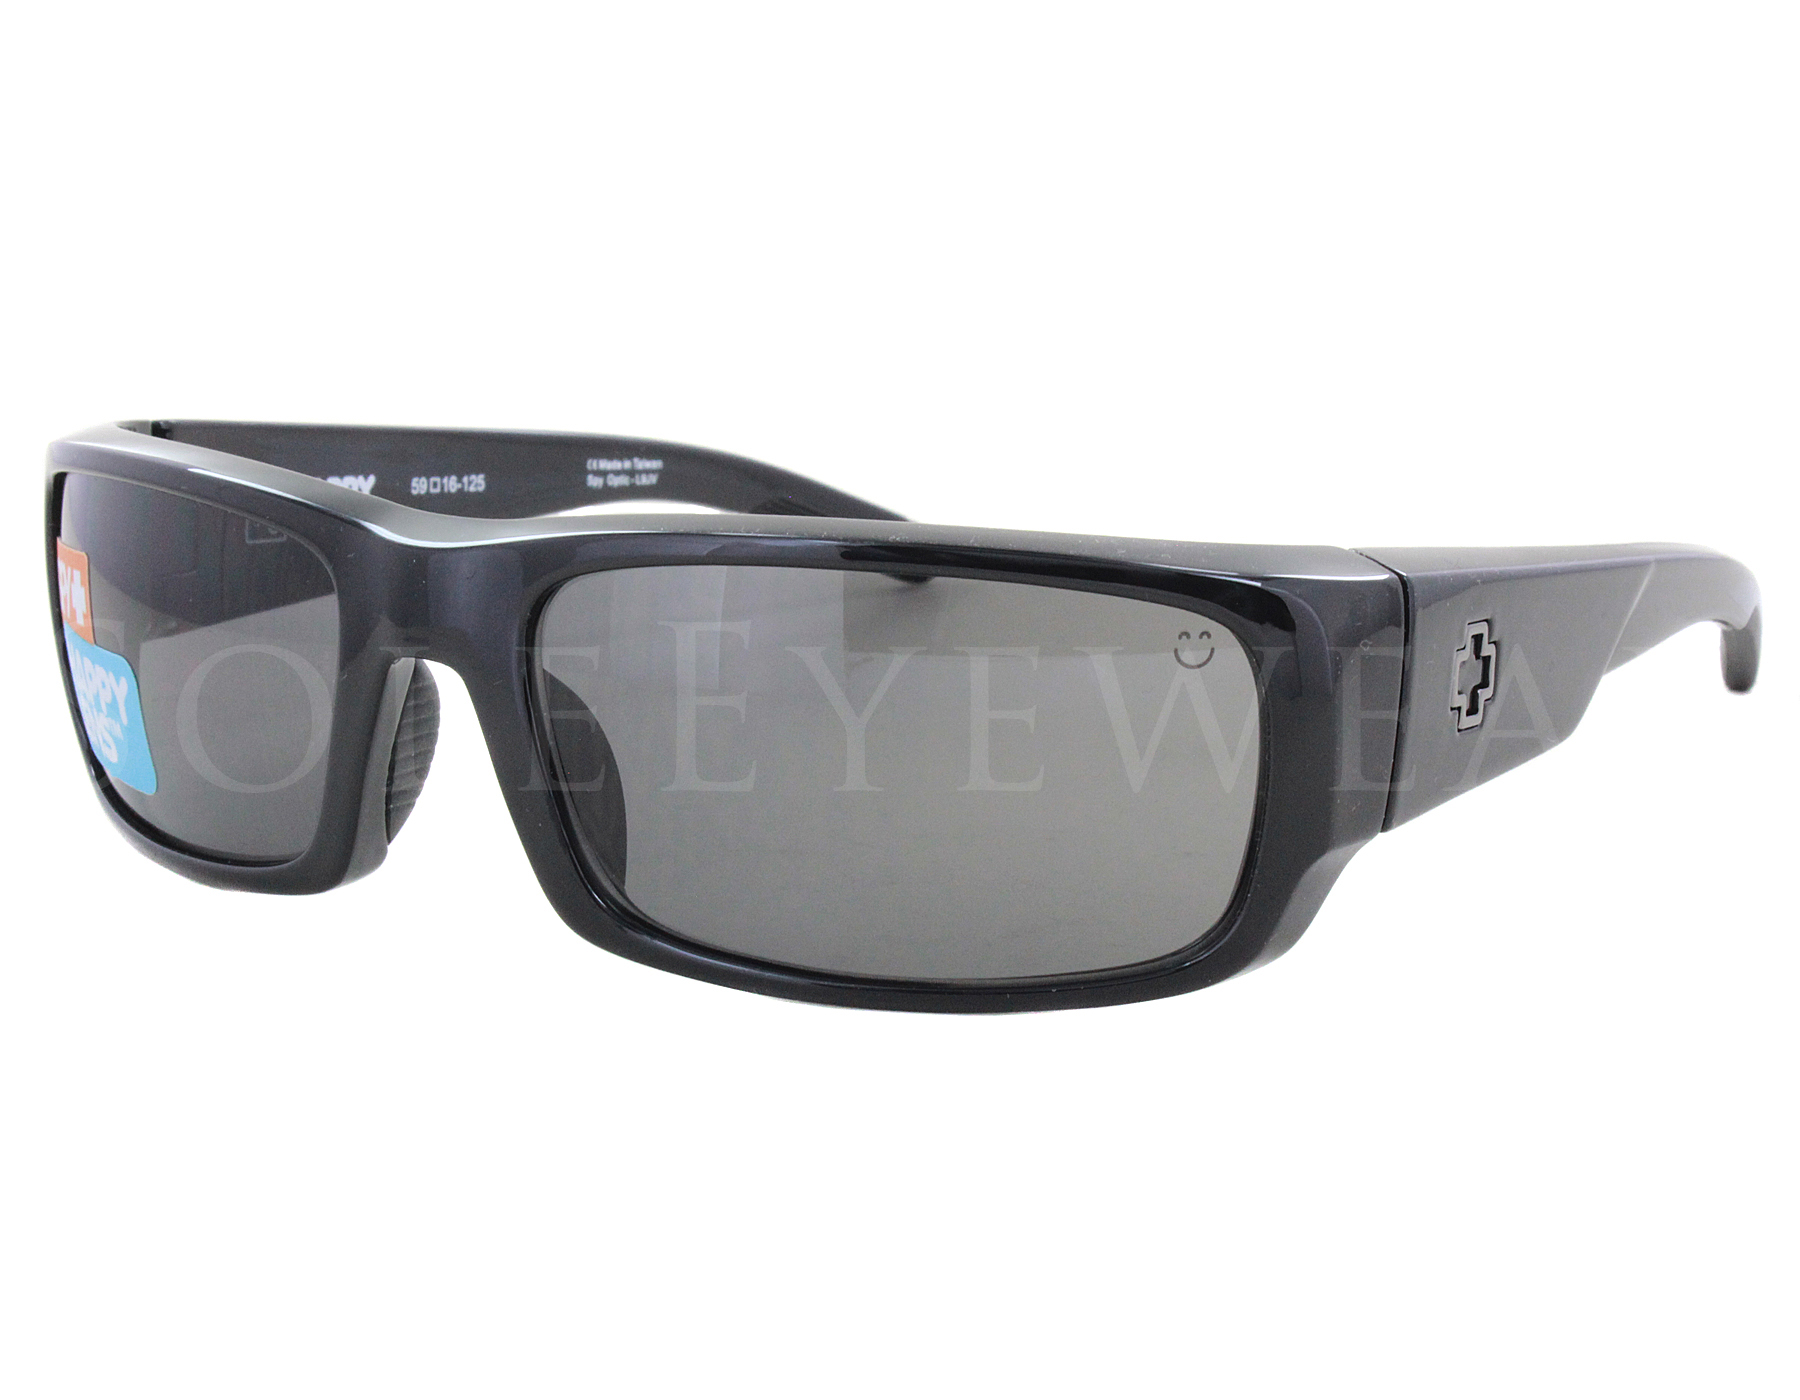 f5ab421262 Details about NEW Spy Optics Caliber 673374038863 Black   Happy Grey Green  Sunglasses